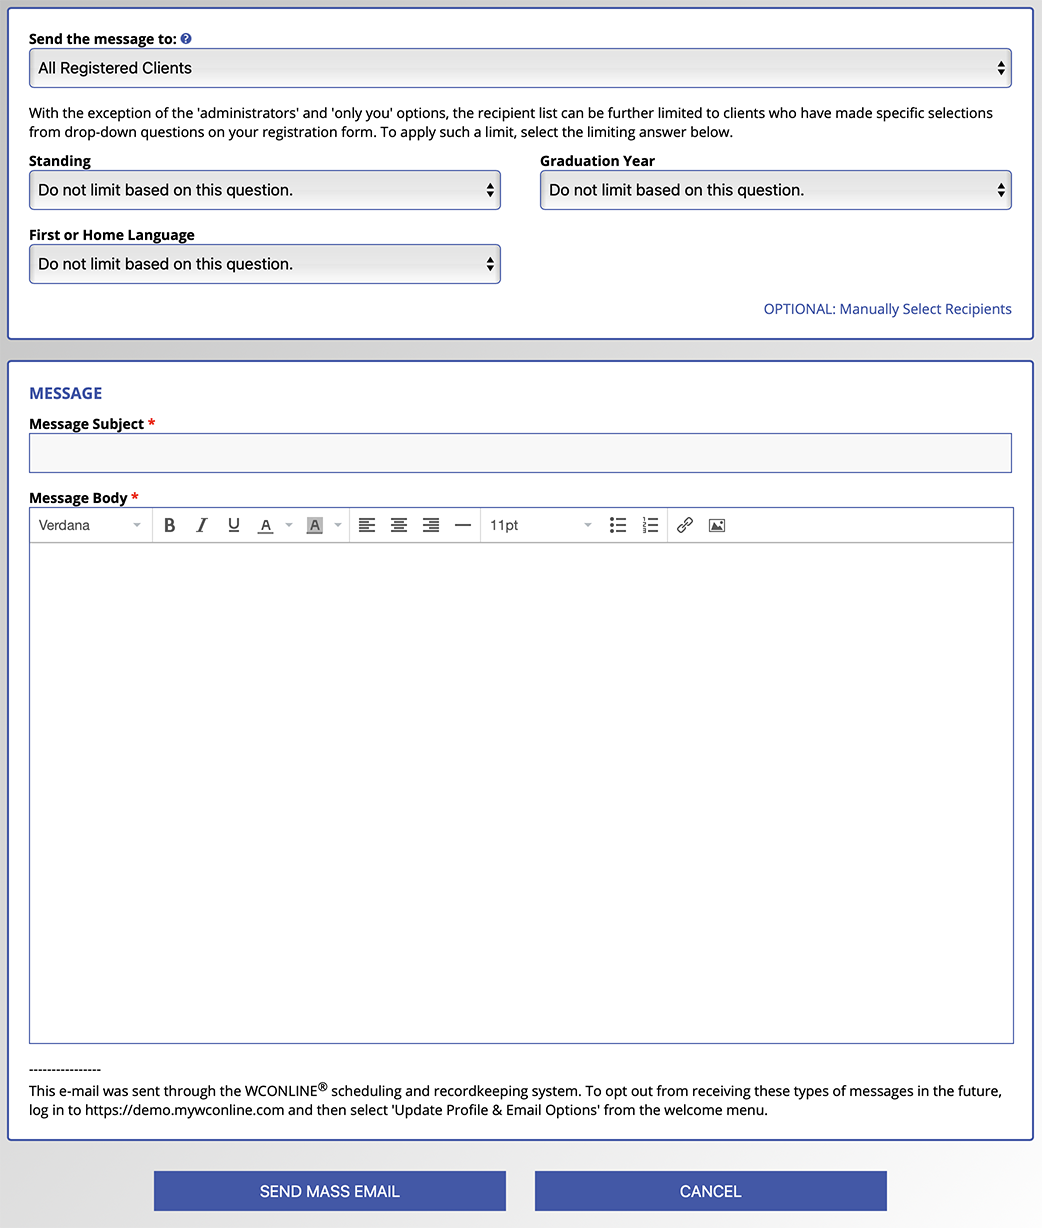 The Mass Email Tool Configuration and Sending Options